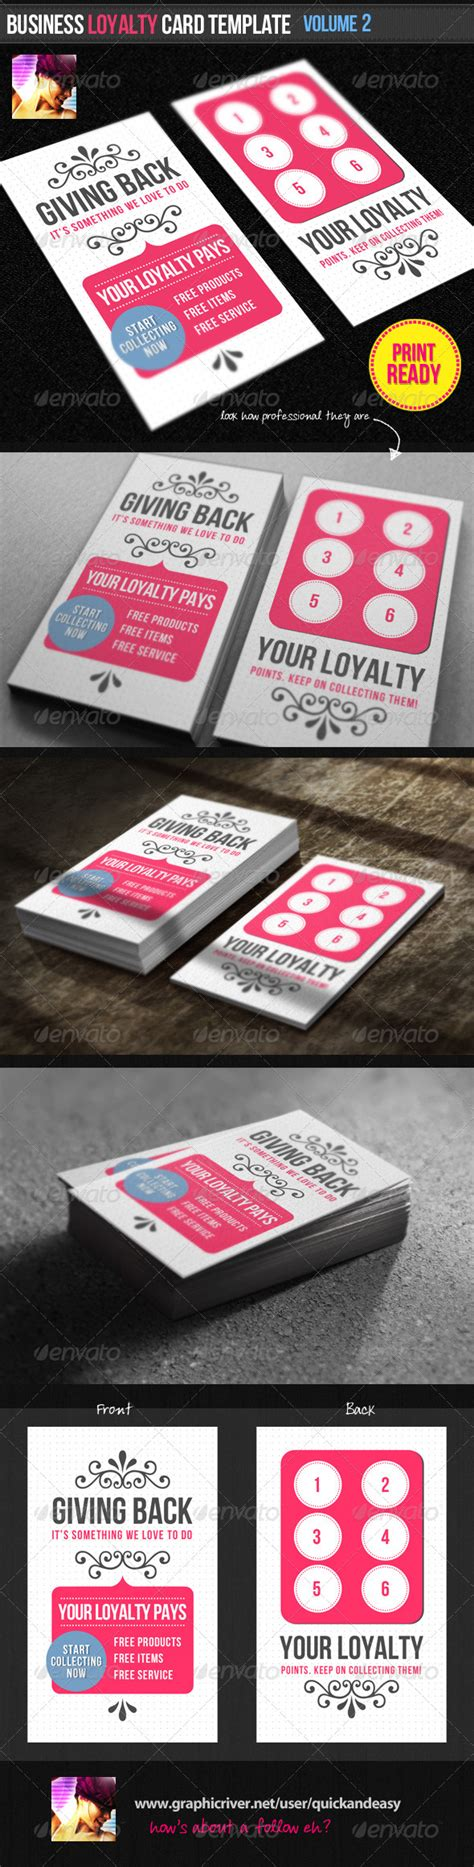 http graphicriver net item funeral service business card template 10998645 business loyalty card template vol 2 by quickandeasy